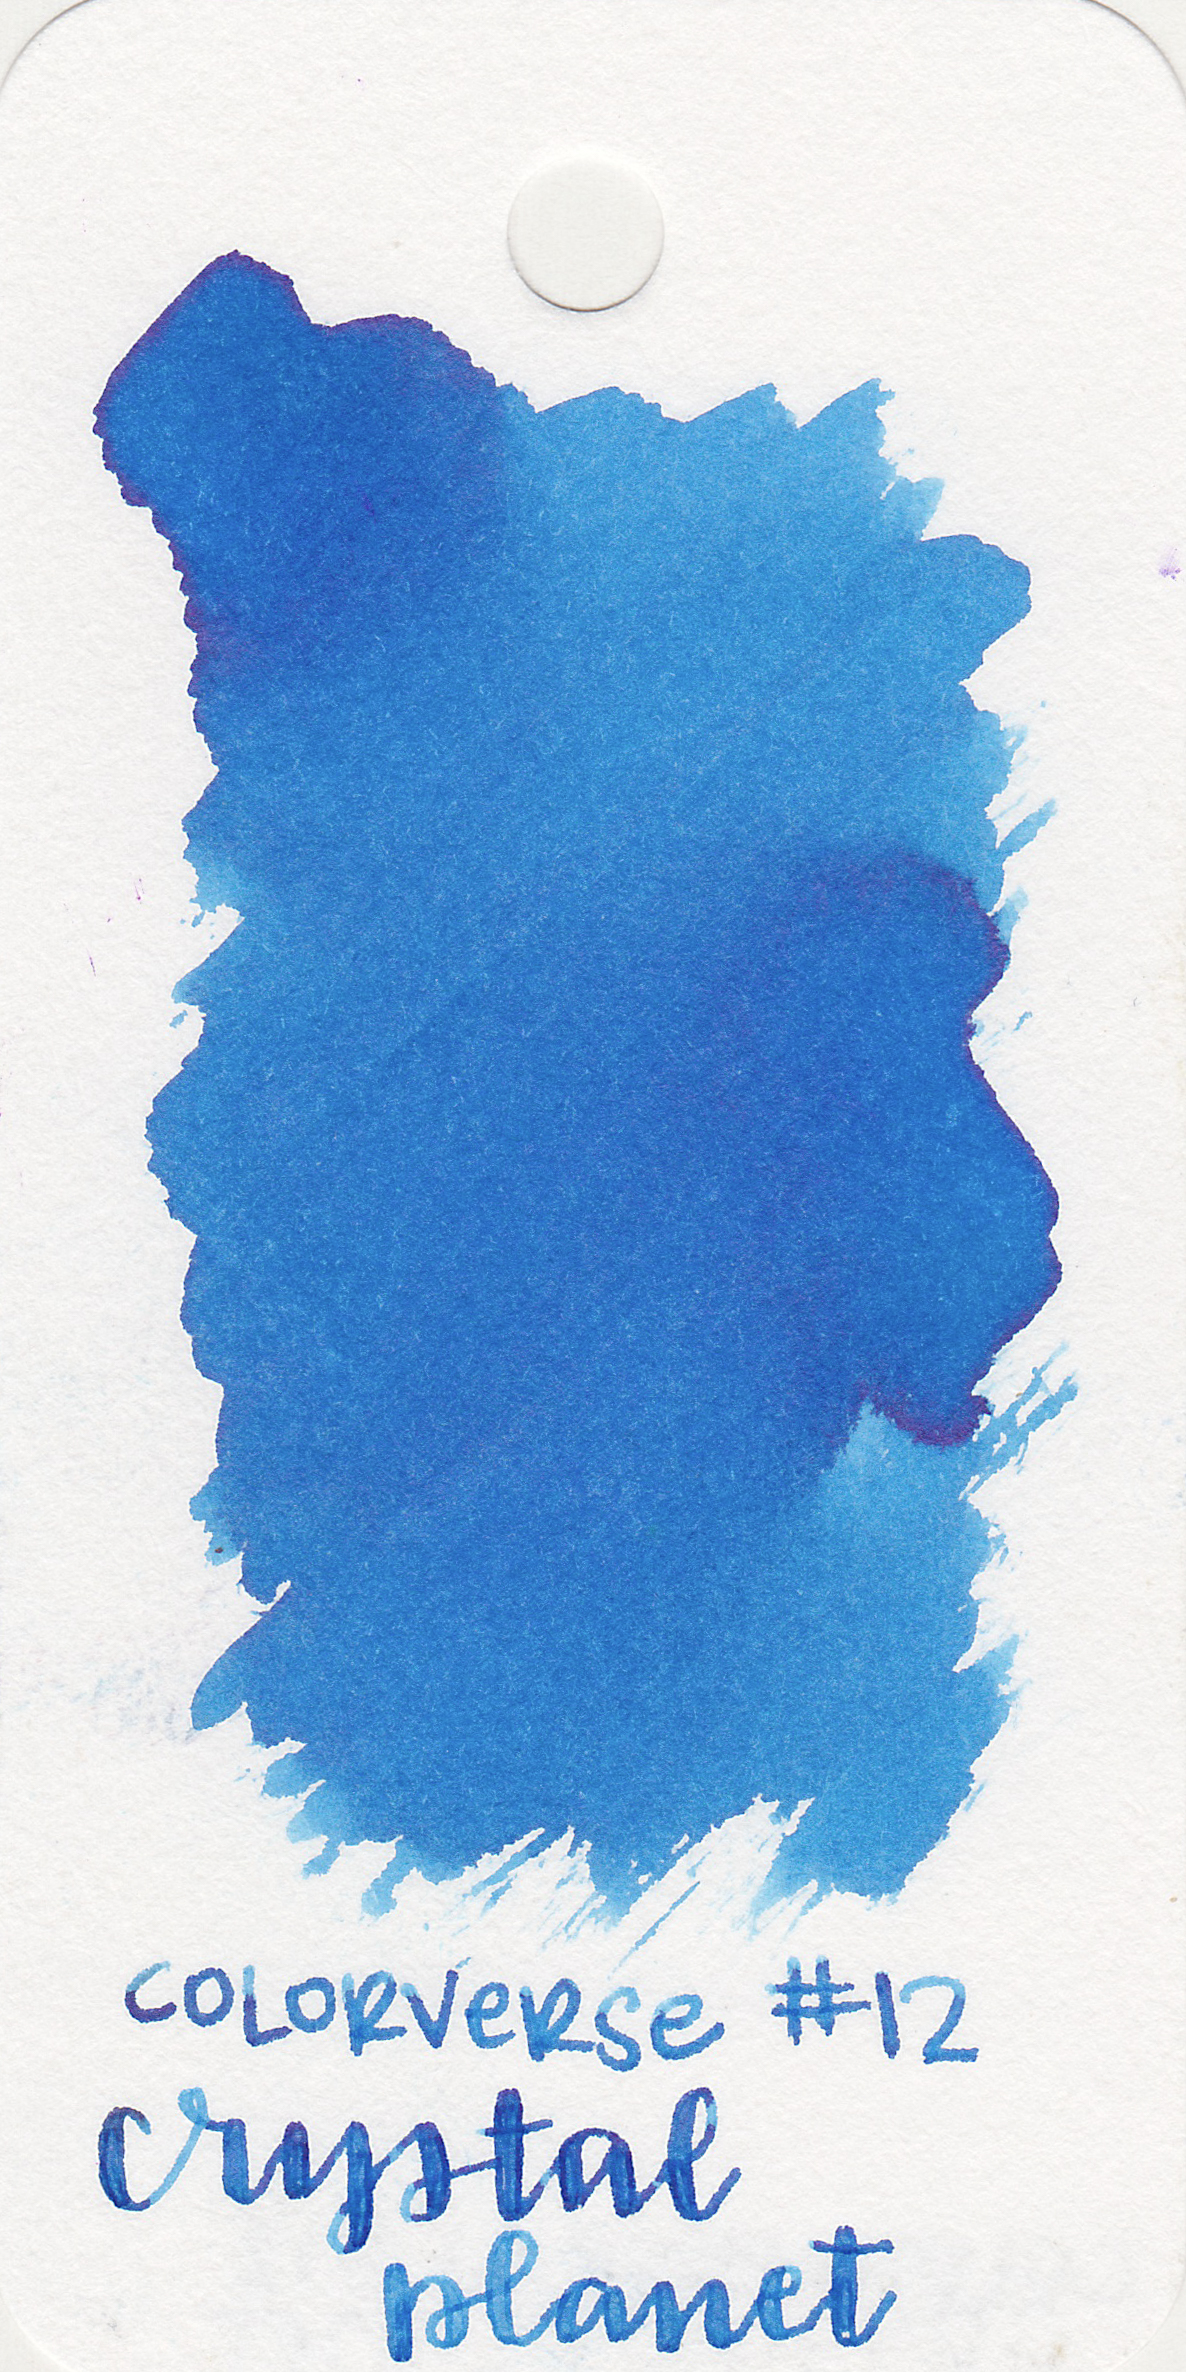 The color: - Crystal Planet is a medium blue.